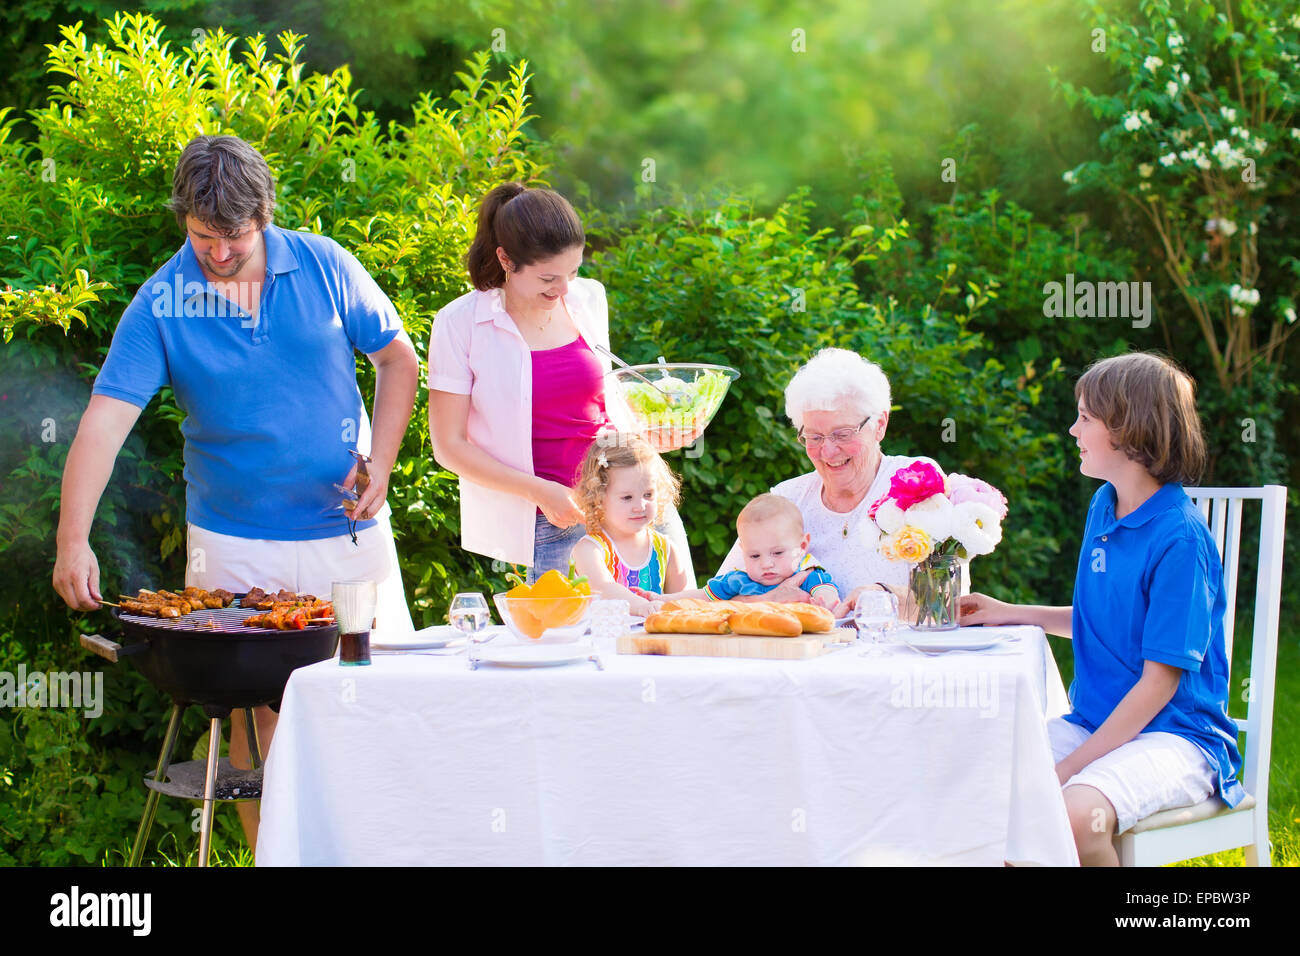 Grill barbecue backyard party. Happy big family enjoying BBQ lunch with grandmother eating grilled meat in the garden - Stock Image